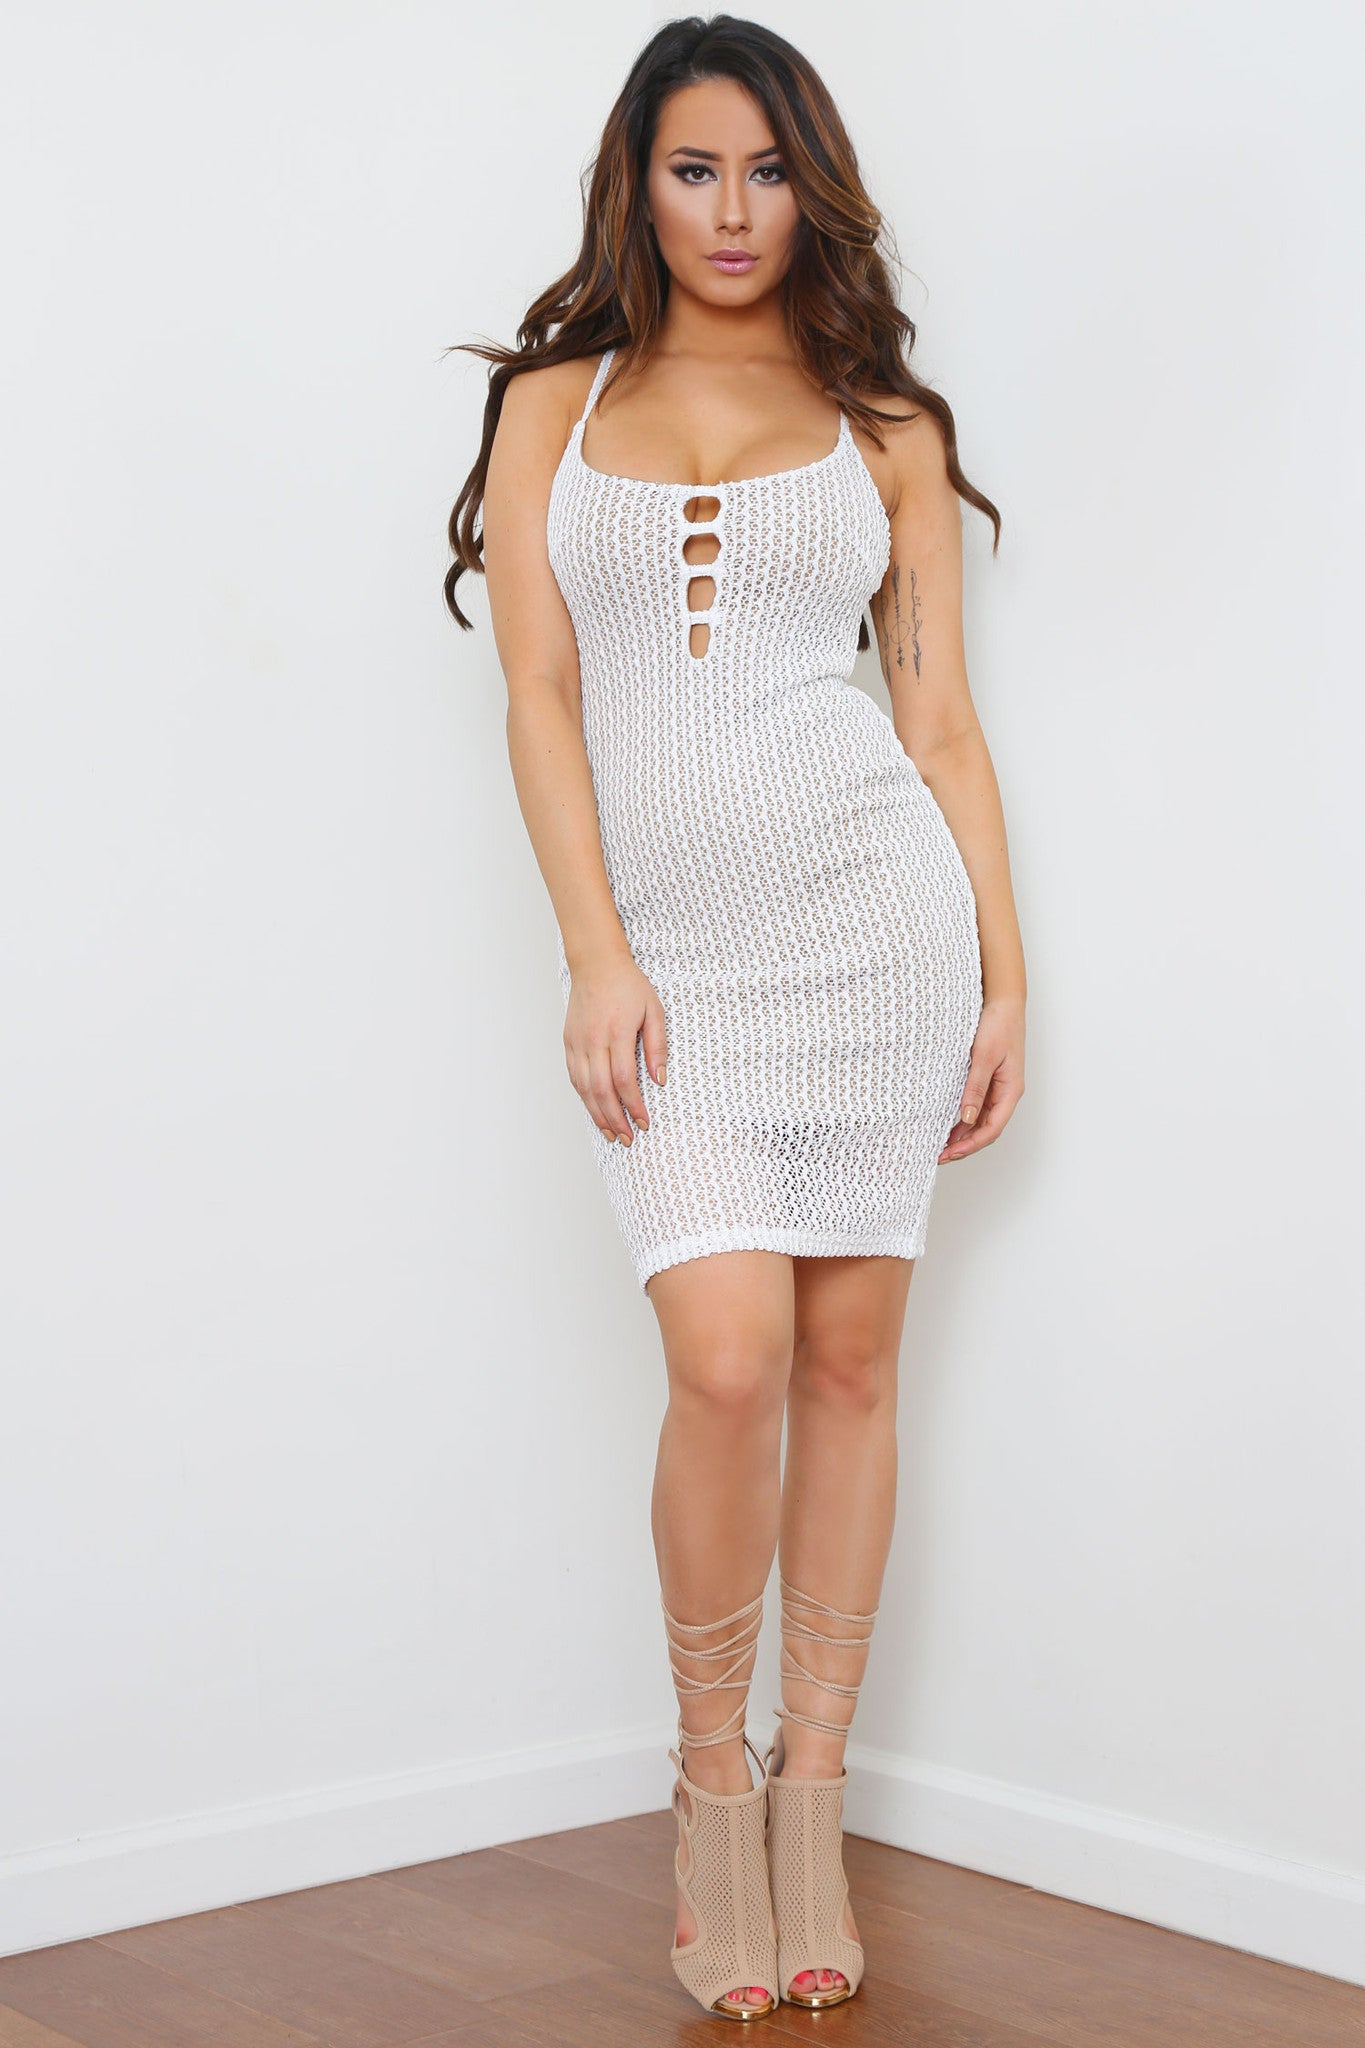 KRISTINA DRESS - Glam Envy - 1